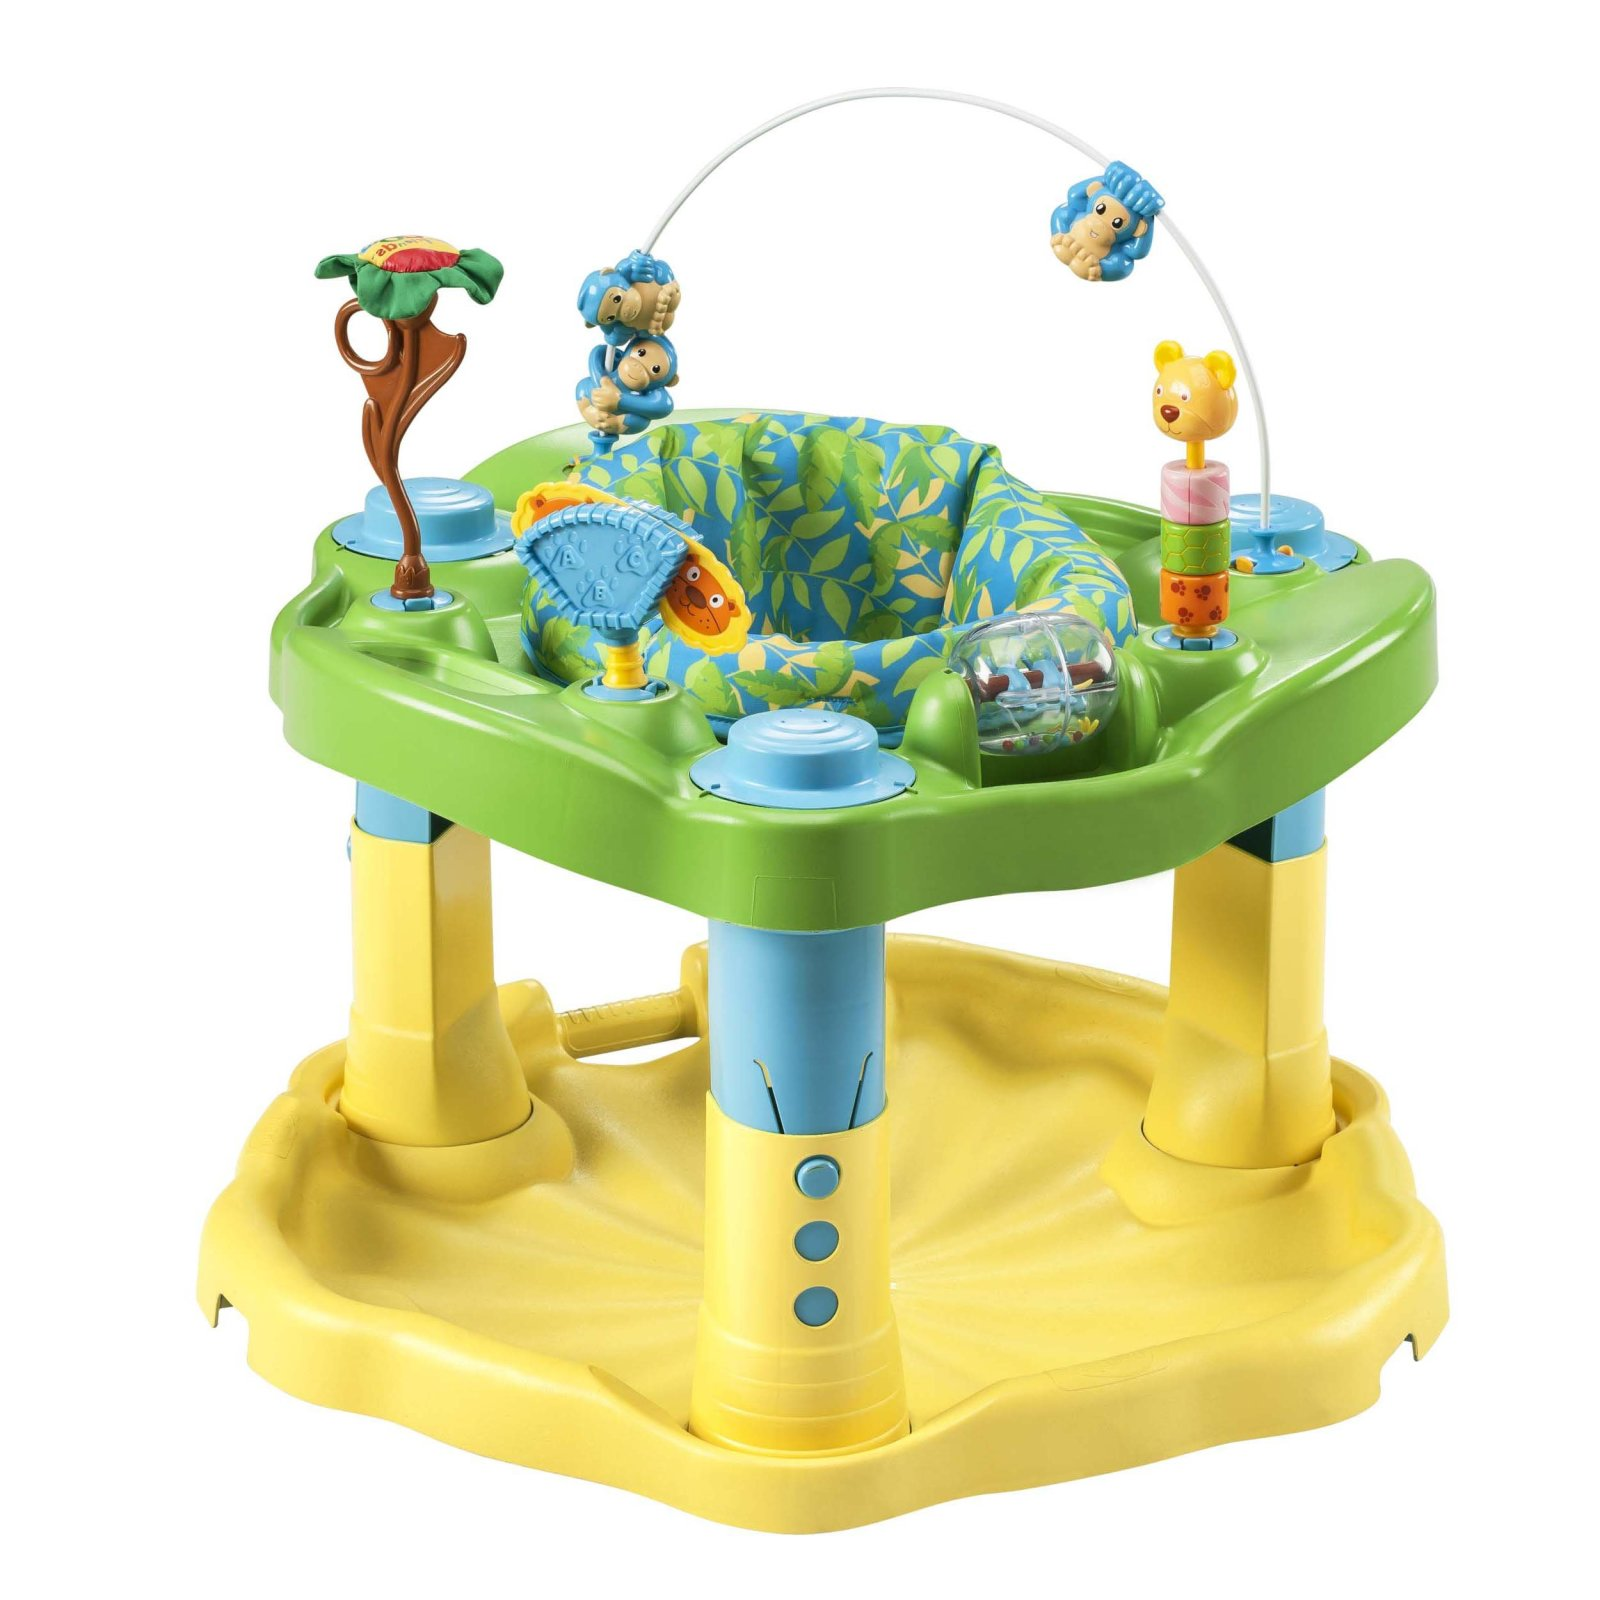 Baby Toddler ExerSaucer Activity Center Babies Learn Fun Toy  Gear Evenflo